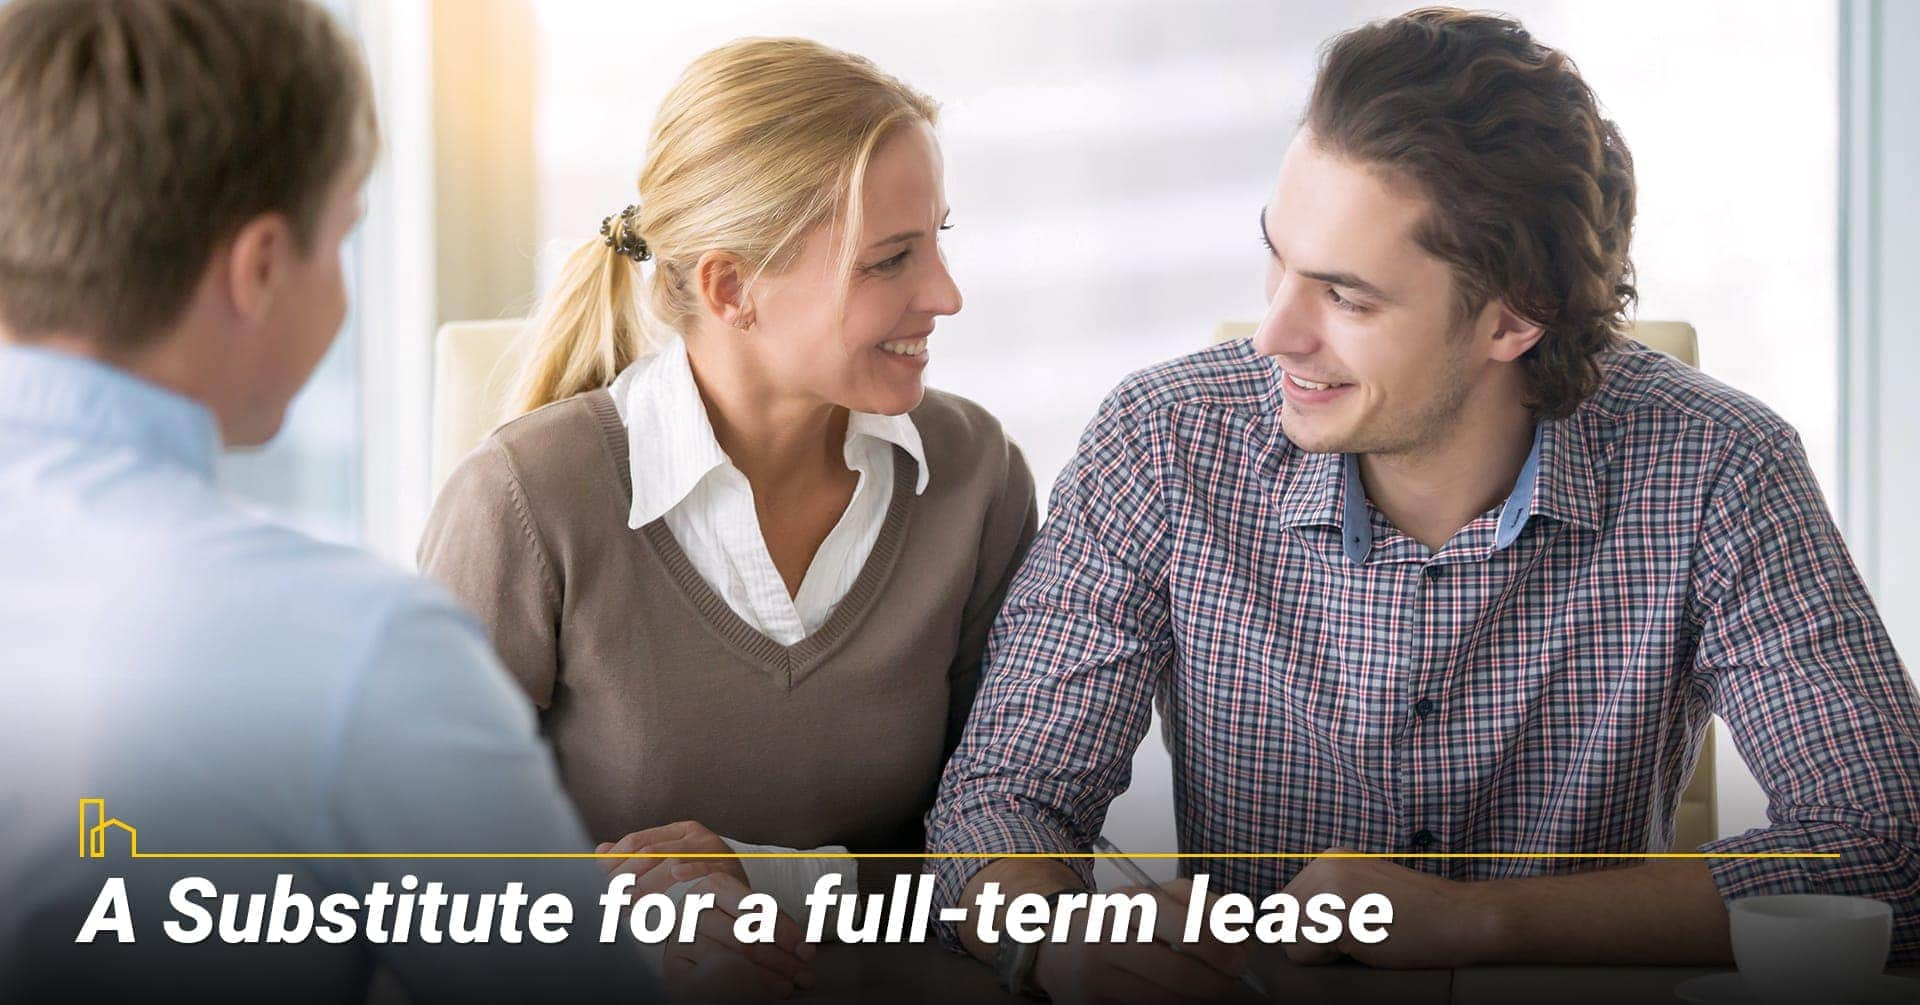 A Substitute for a full-term lease, leasing options